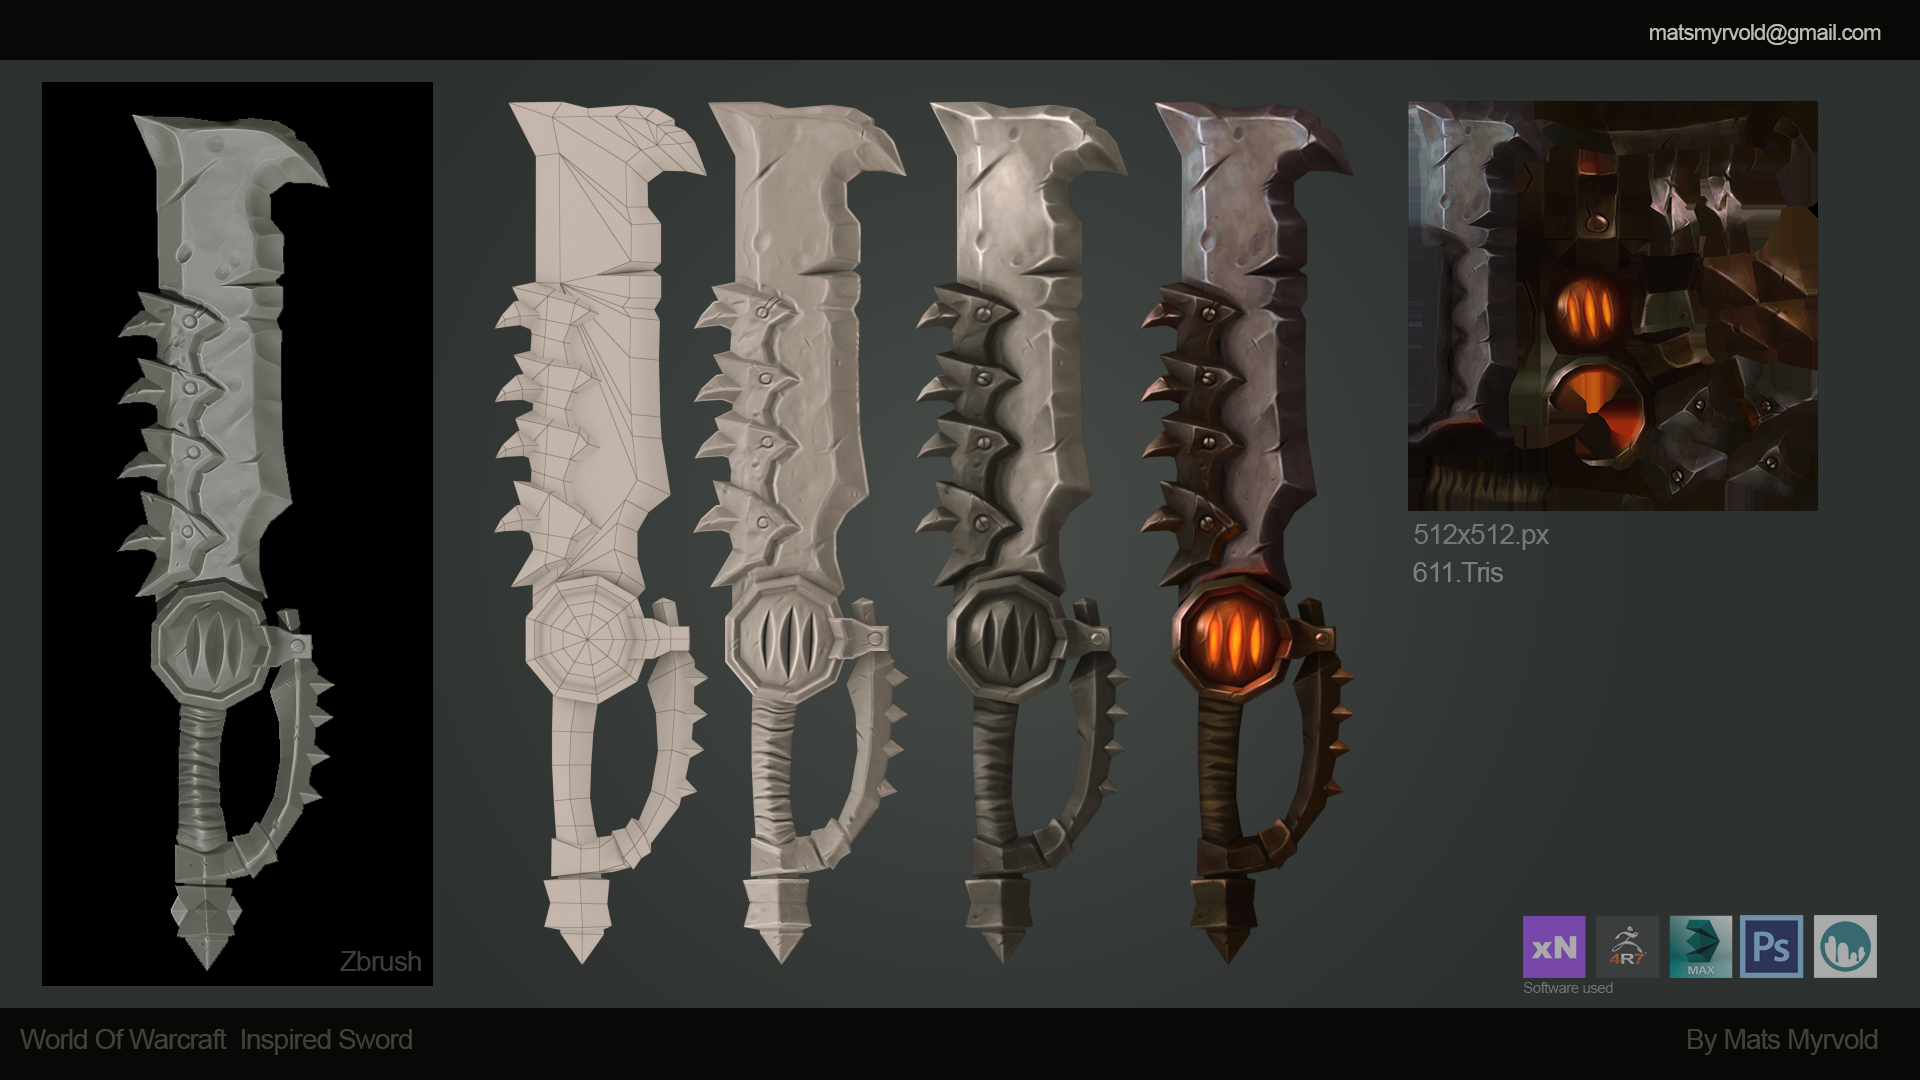 Hand Painted Blizzard inspired sword Texturing and modeling